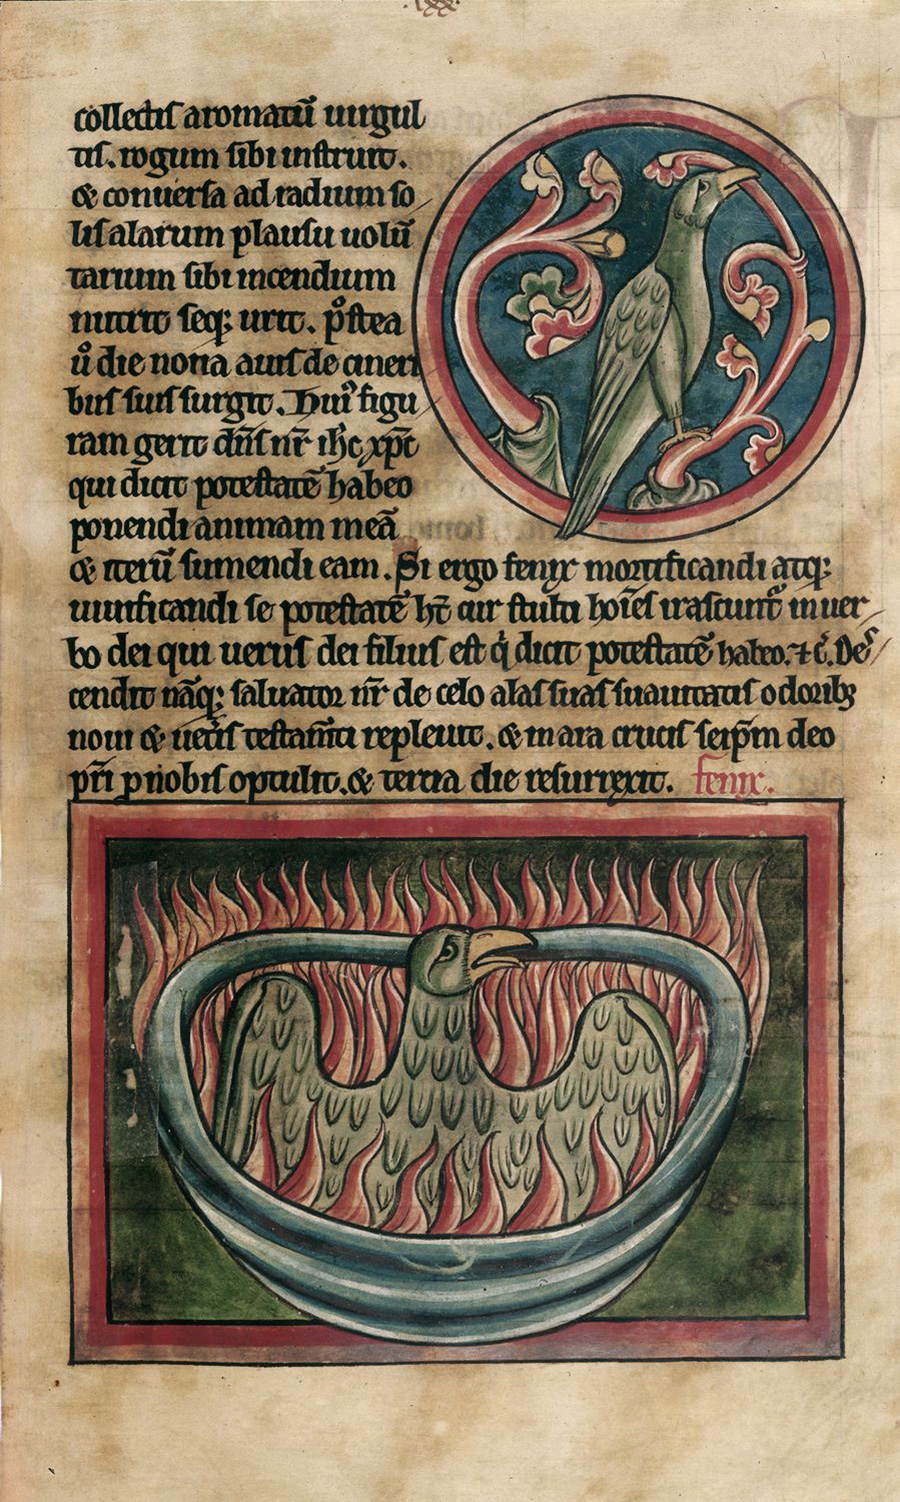 A manuscript page has two depictions of phoenix birds. At top, the bird grasps a branch with its beak. At bottom, the bird sits in a large tub, wings spread, as it goes up in a riot of flames